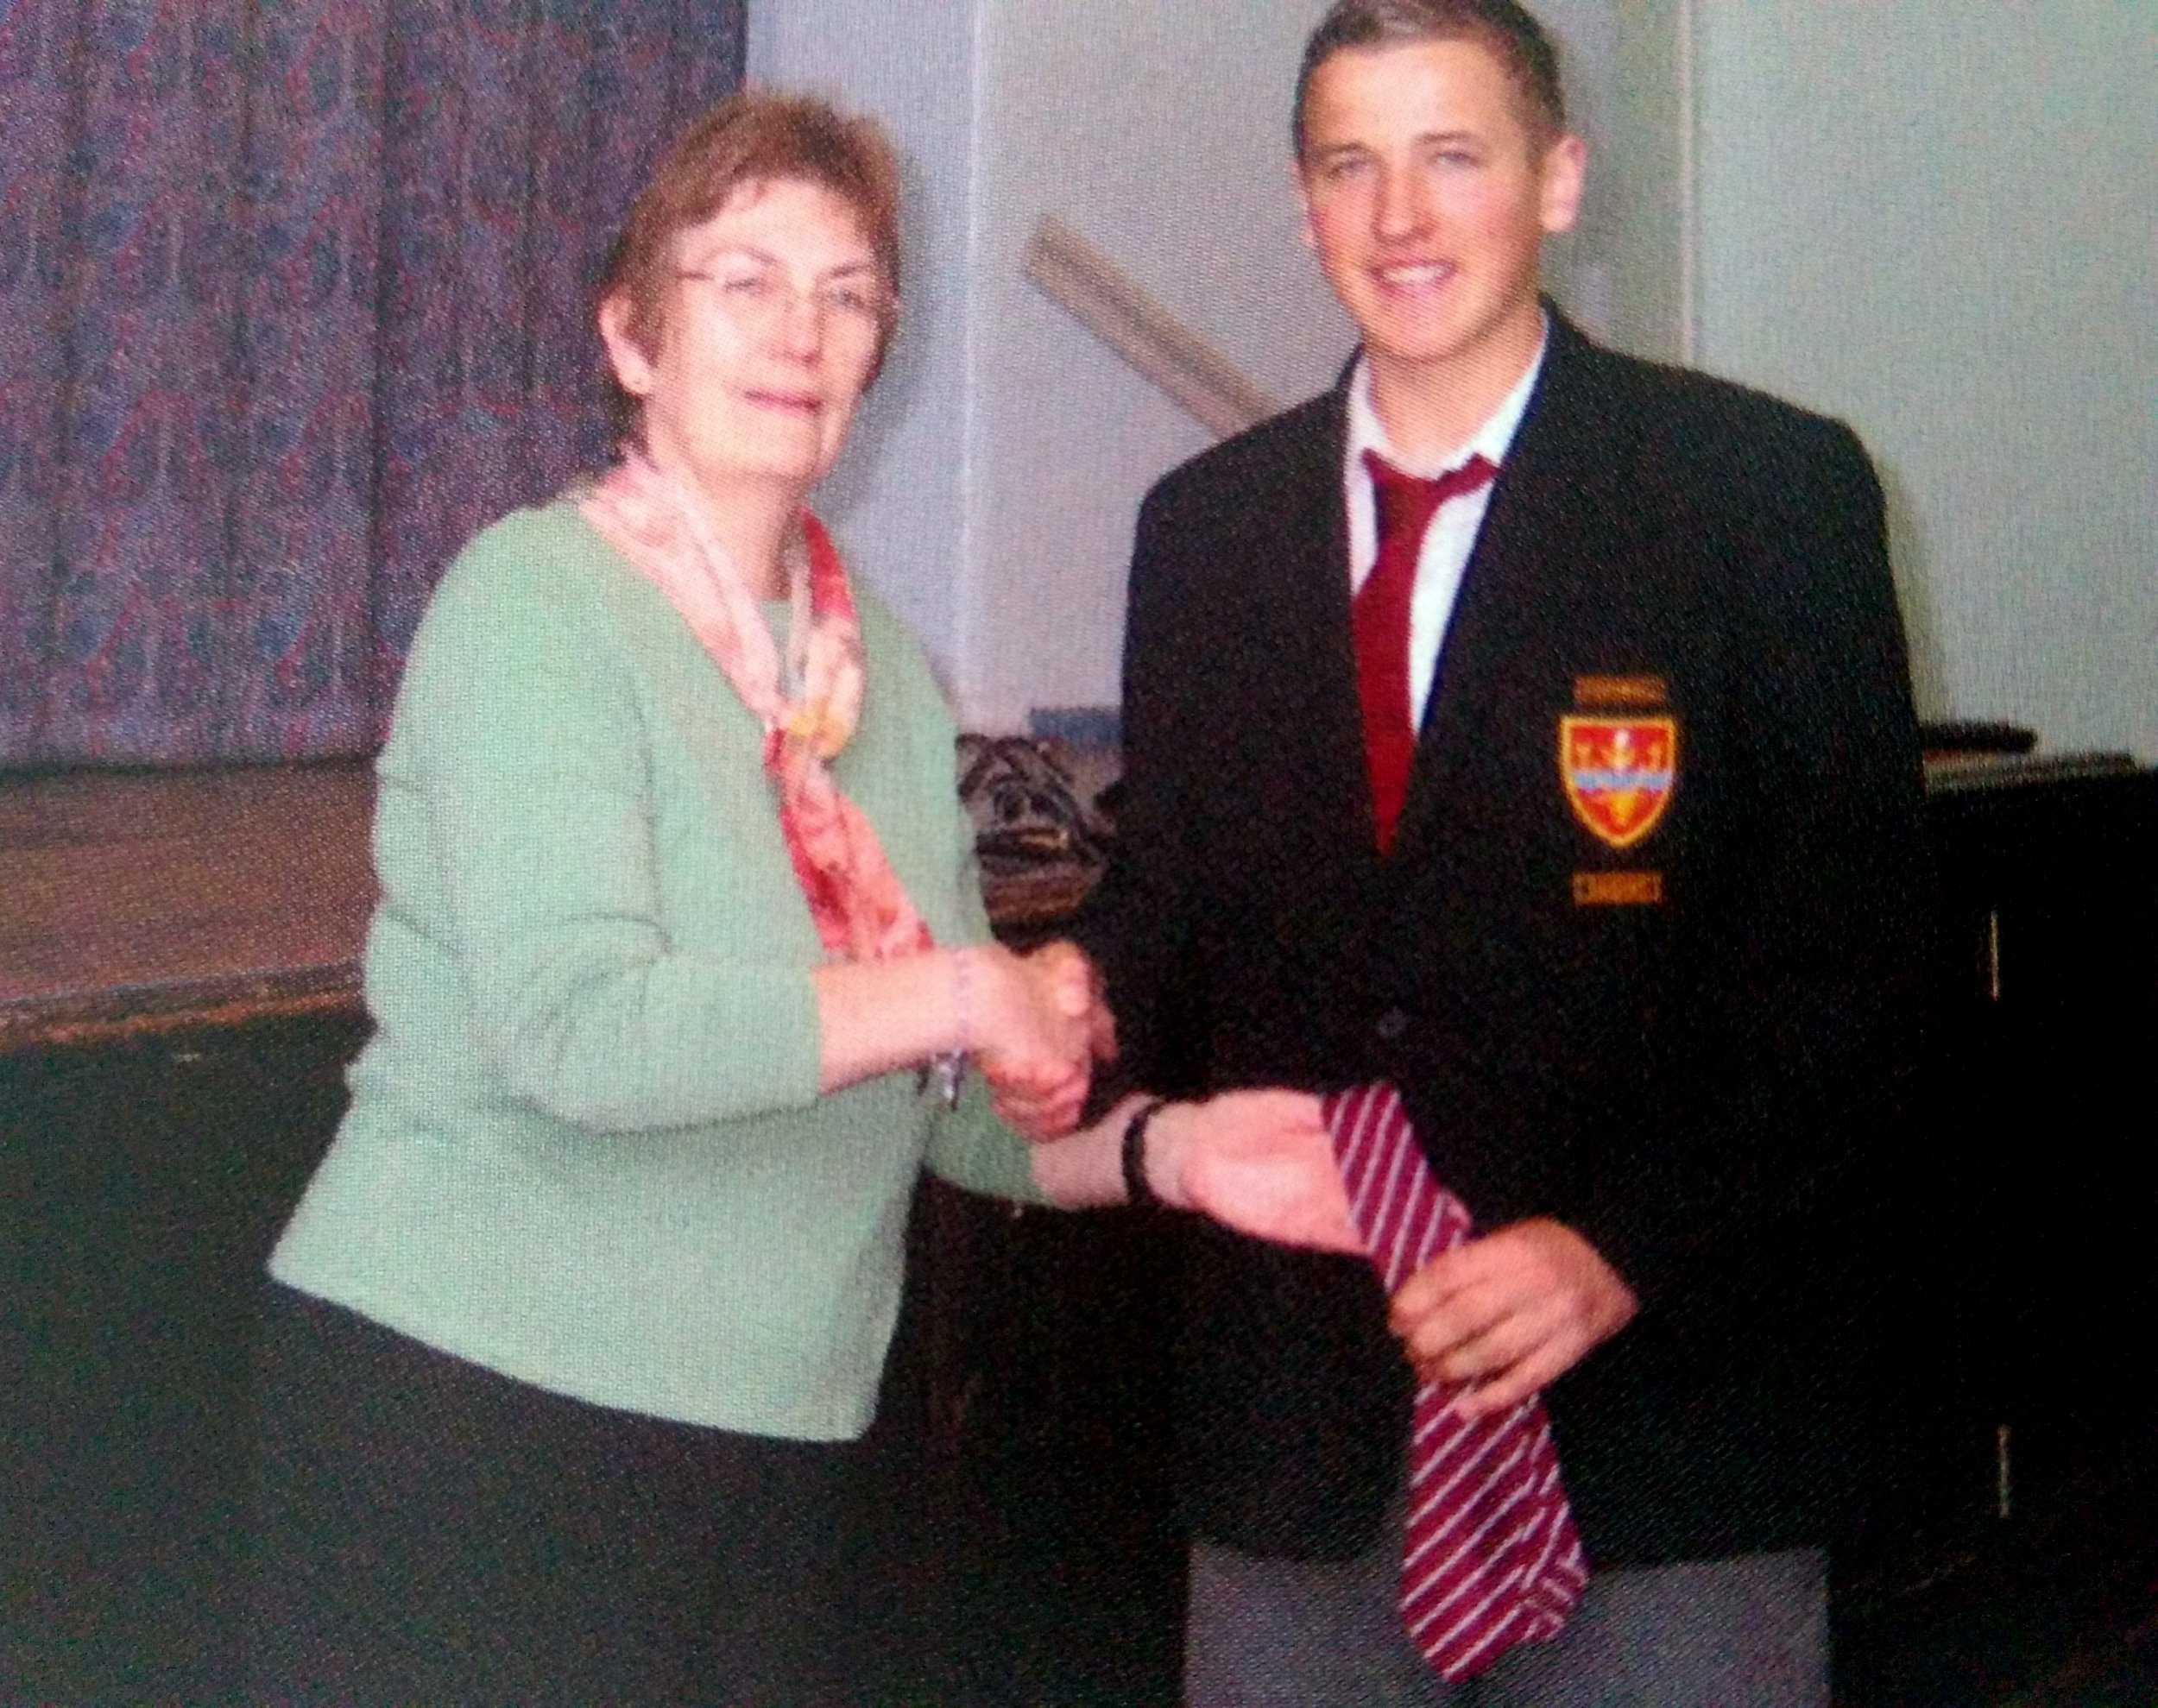 Harry Kane is seen in a school photo with his school tie. See SWNS story SWKANE; Fans are hoping Harry Kane will soon be recreating this never-before-seen yearbook photo of him lifting the cup surrounded by his football team - aged just 15. The photo shows the fresh-faced teenager posing for pics with the Year 11 football team at Chingford Foundation School in the London Borough Waltham Forest. The 2004-2009 yearbook also includes snaps of him accepting a striped tie for his dedication to the football and cricket teams while shaking hands with his head of year. And it wasn't just Harry who was good at sport according to the yearbook.